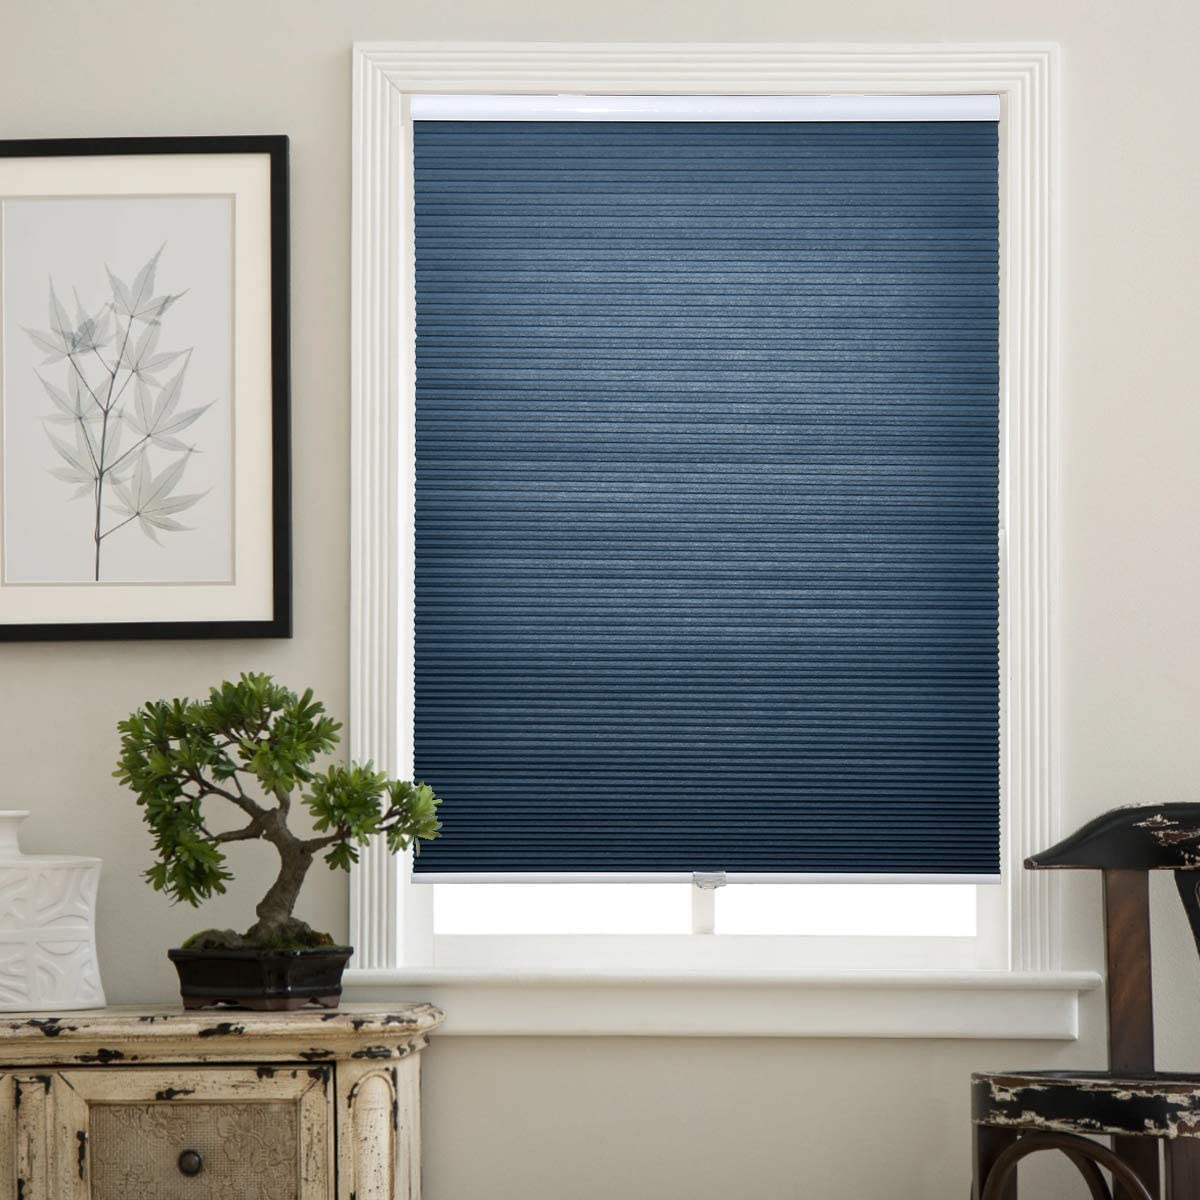 Matinss Cellular Shades Cordless Window Blinds Honeycomb Shades for Home and Windows Bedroom, Light Filtering, Blue, 34x64